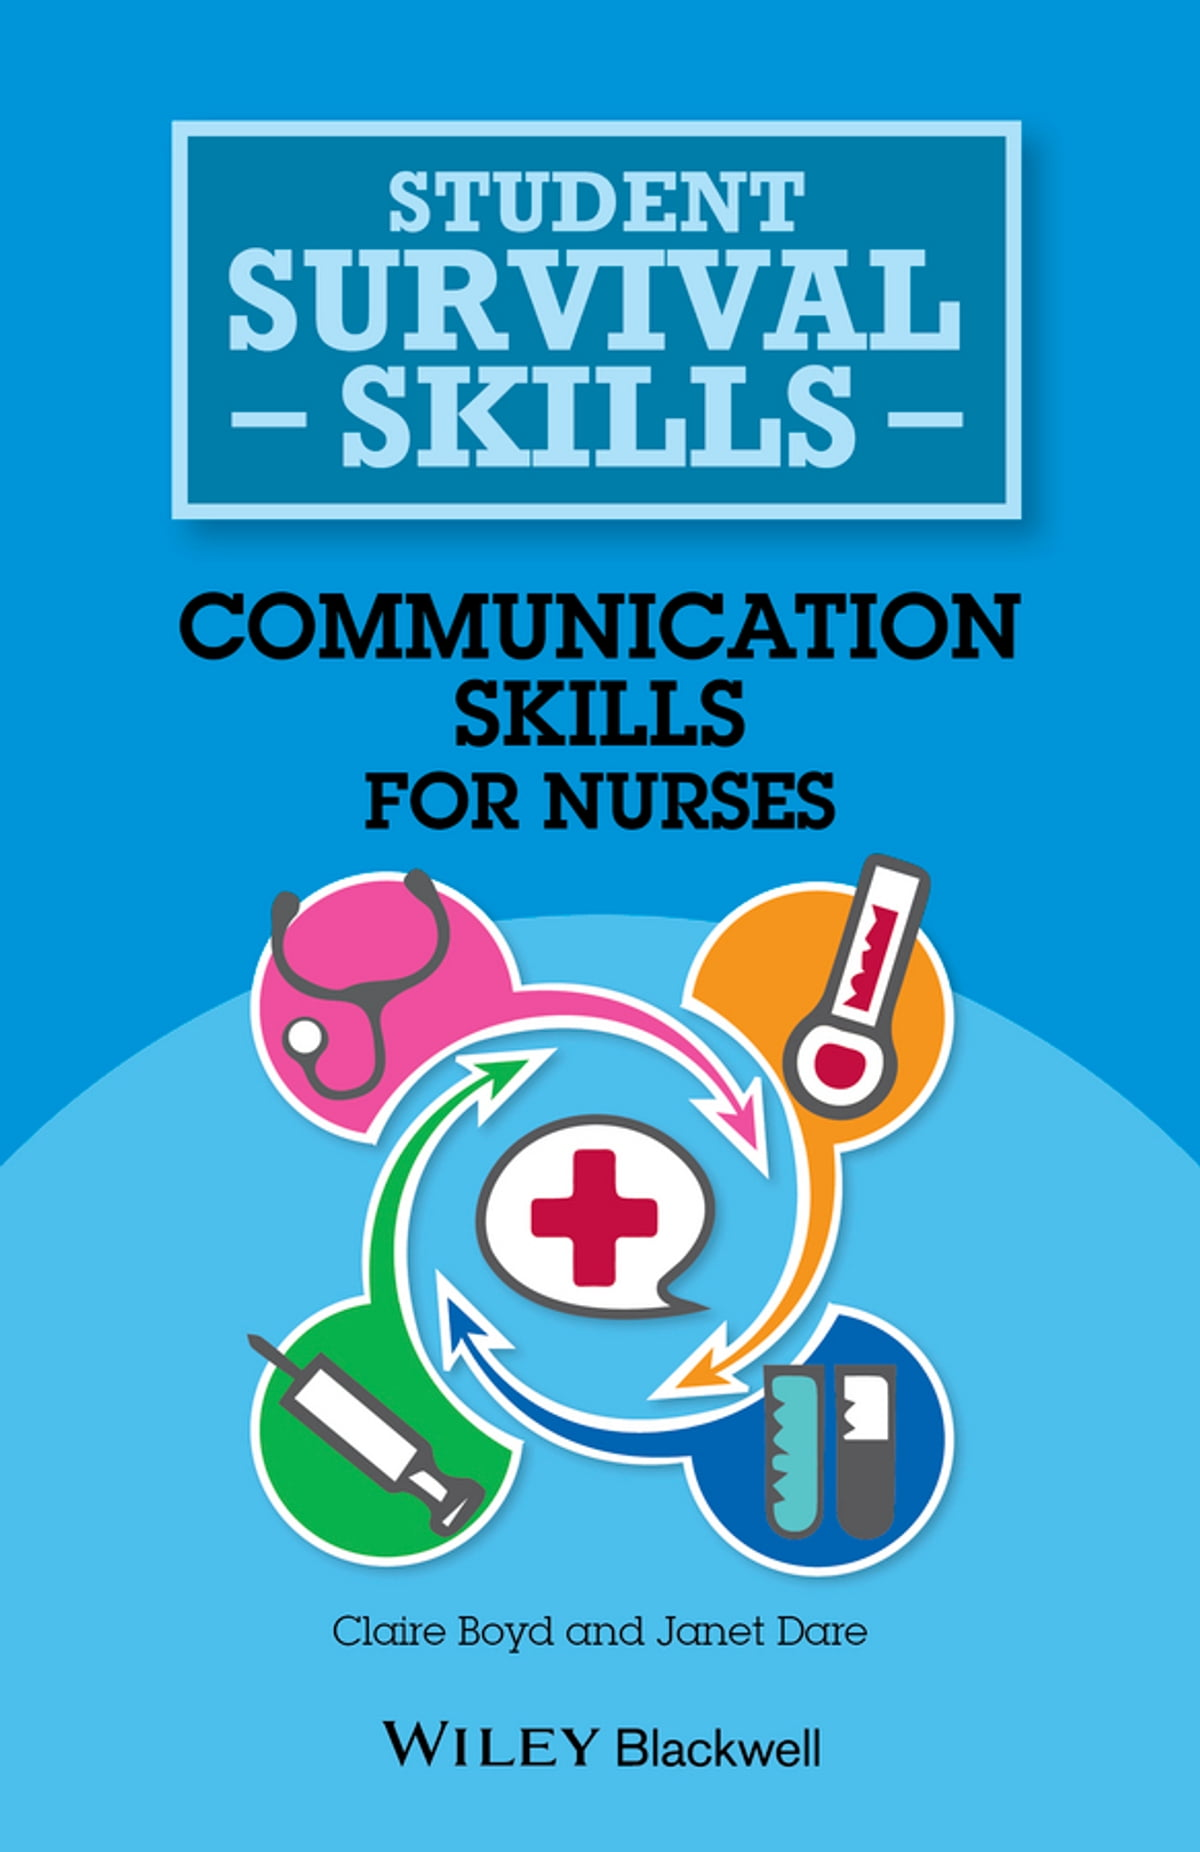 Communication Skills For Nurses Ebook By Claire Boyd